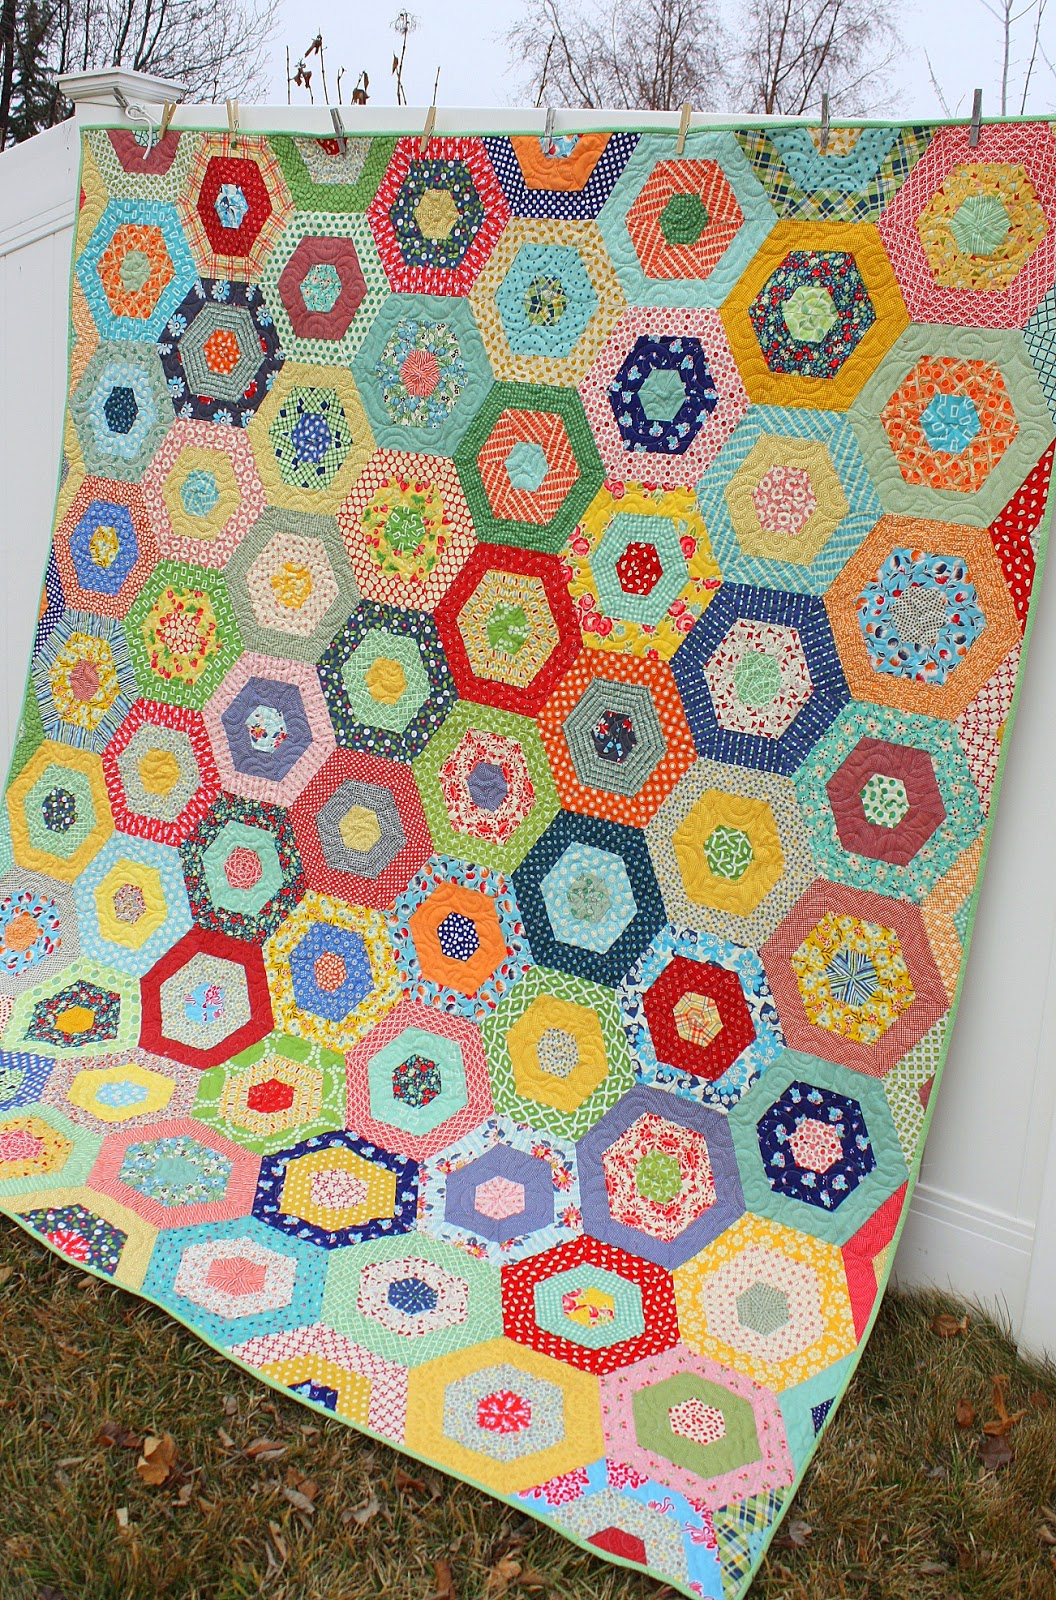 Scrappy Giant Hexagon quilt - Diary of a Quilter - a quilt blog : merry go round quilt - Adamdwight.com